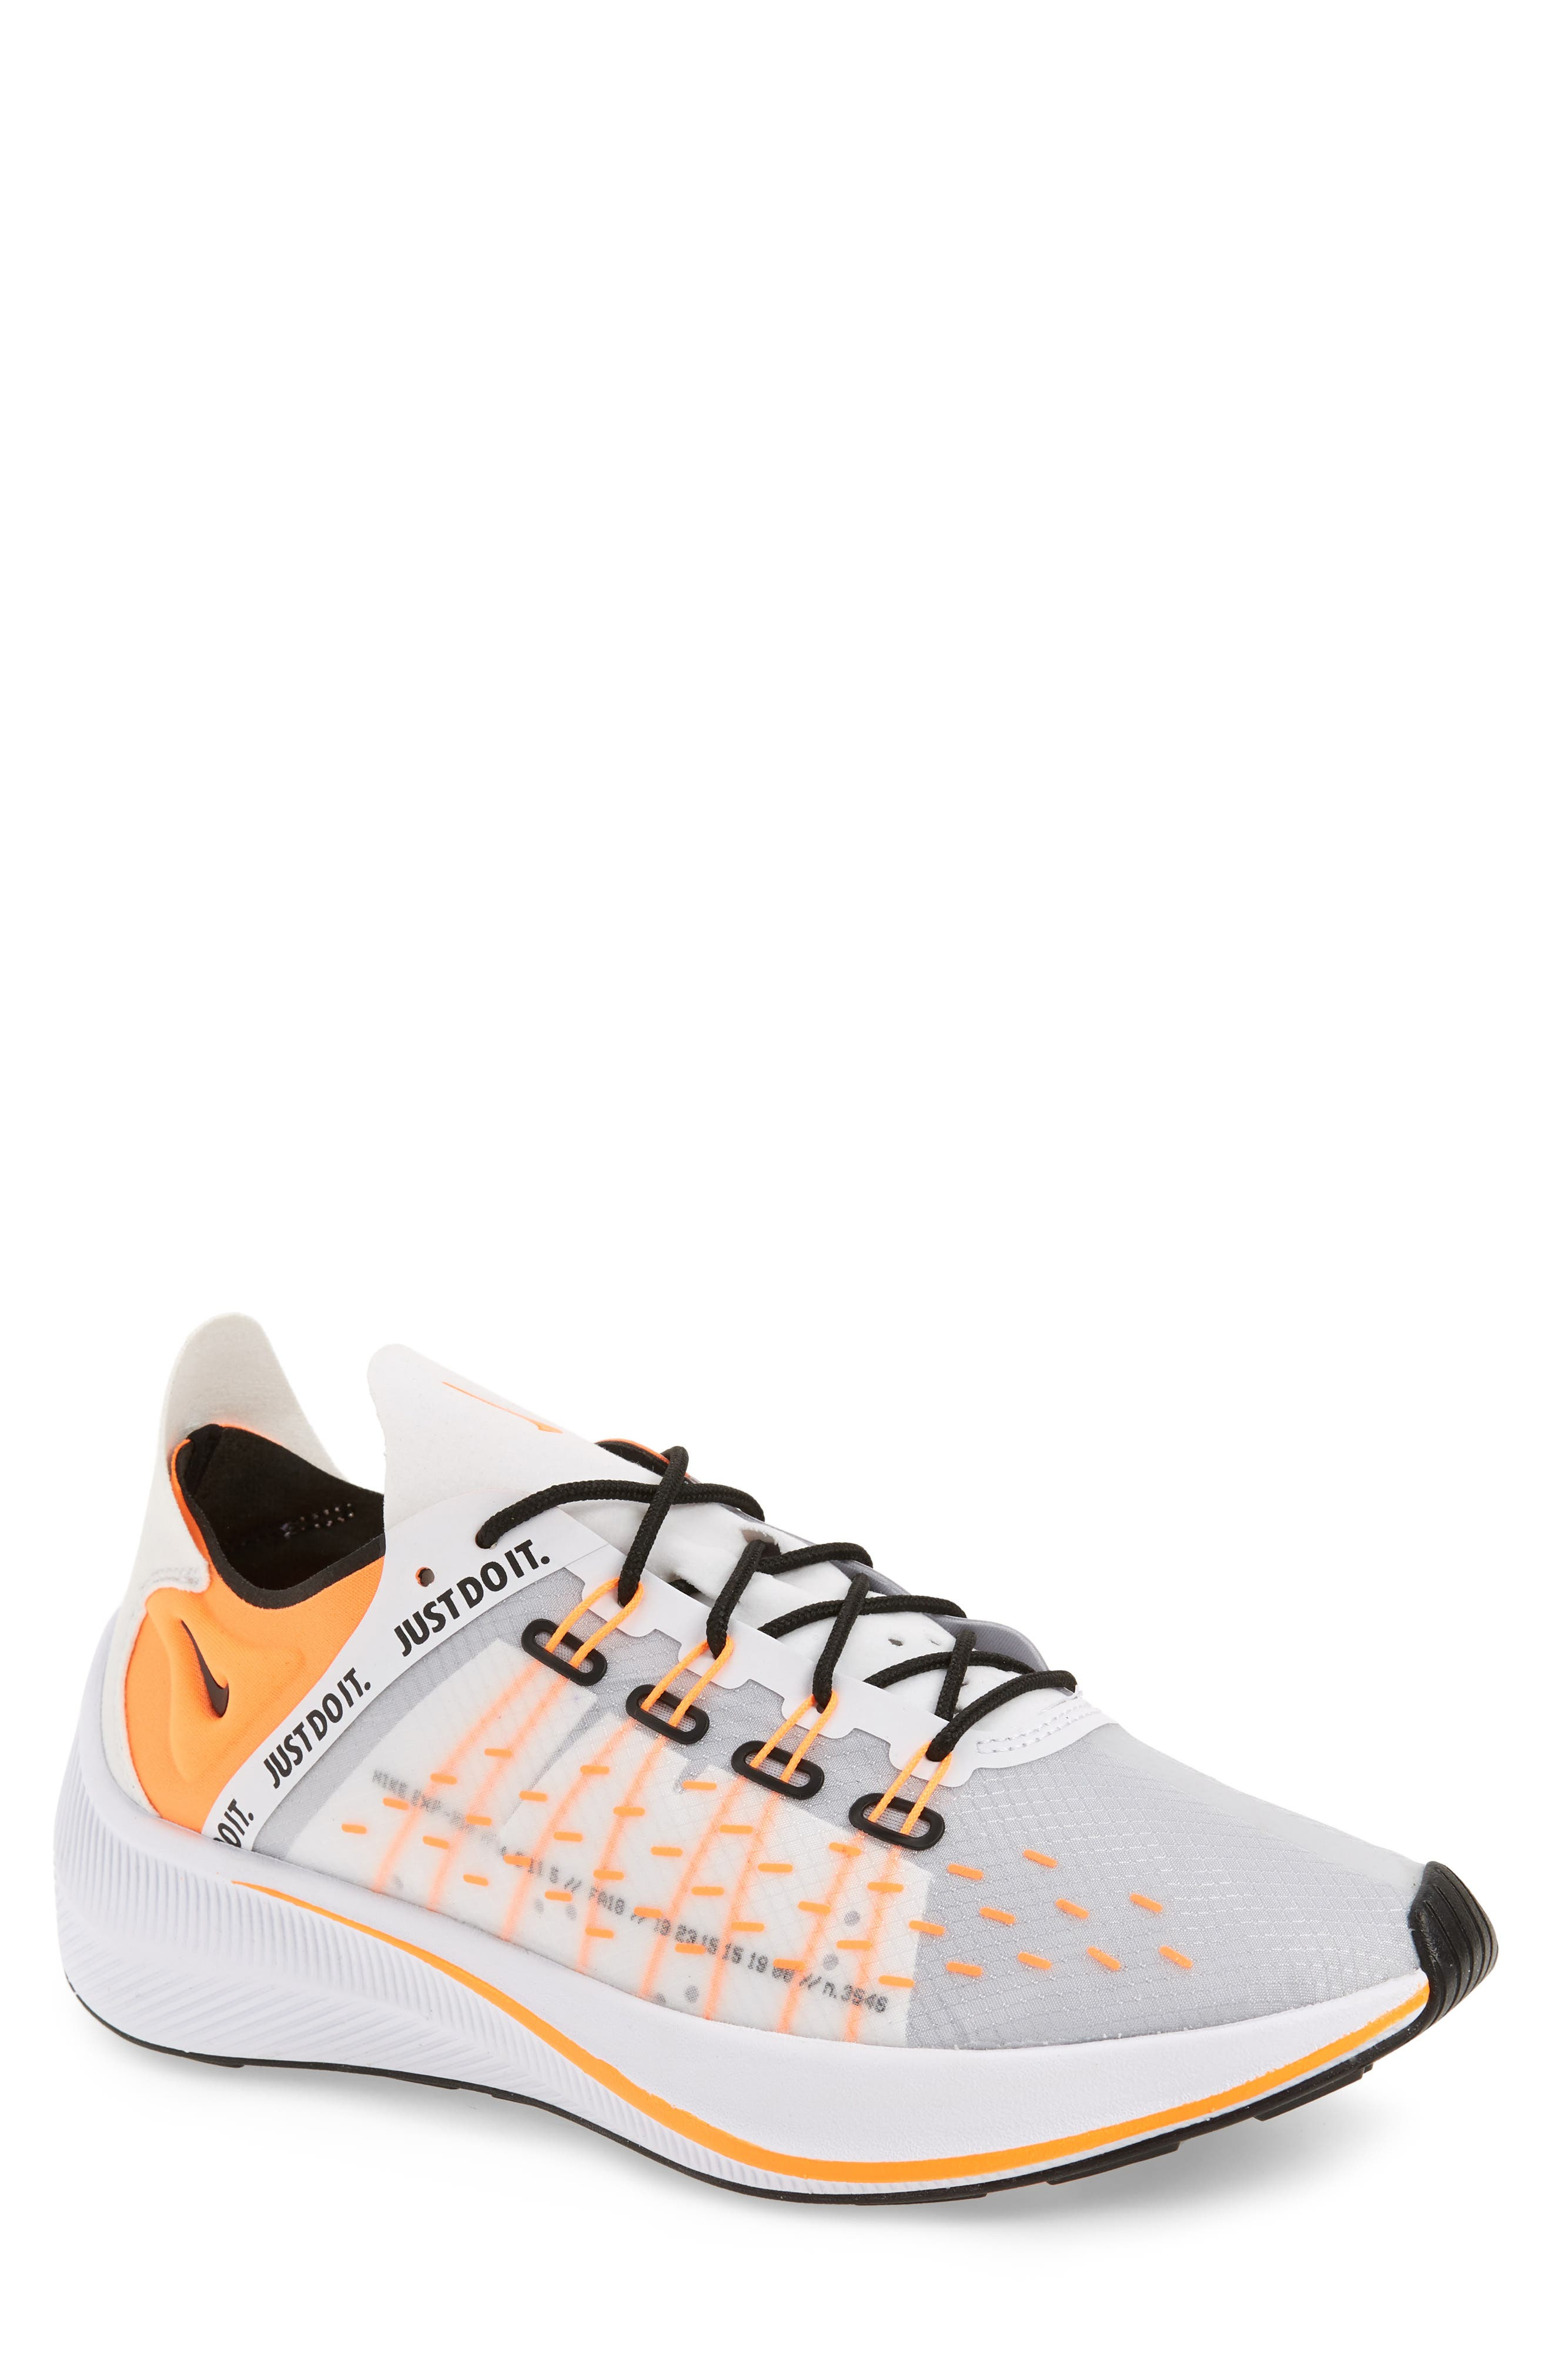 EXP-X14 Just Do It Sneaker,                         Main,                         color, 100